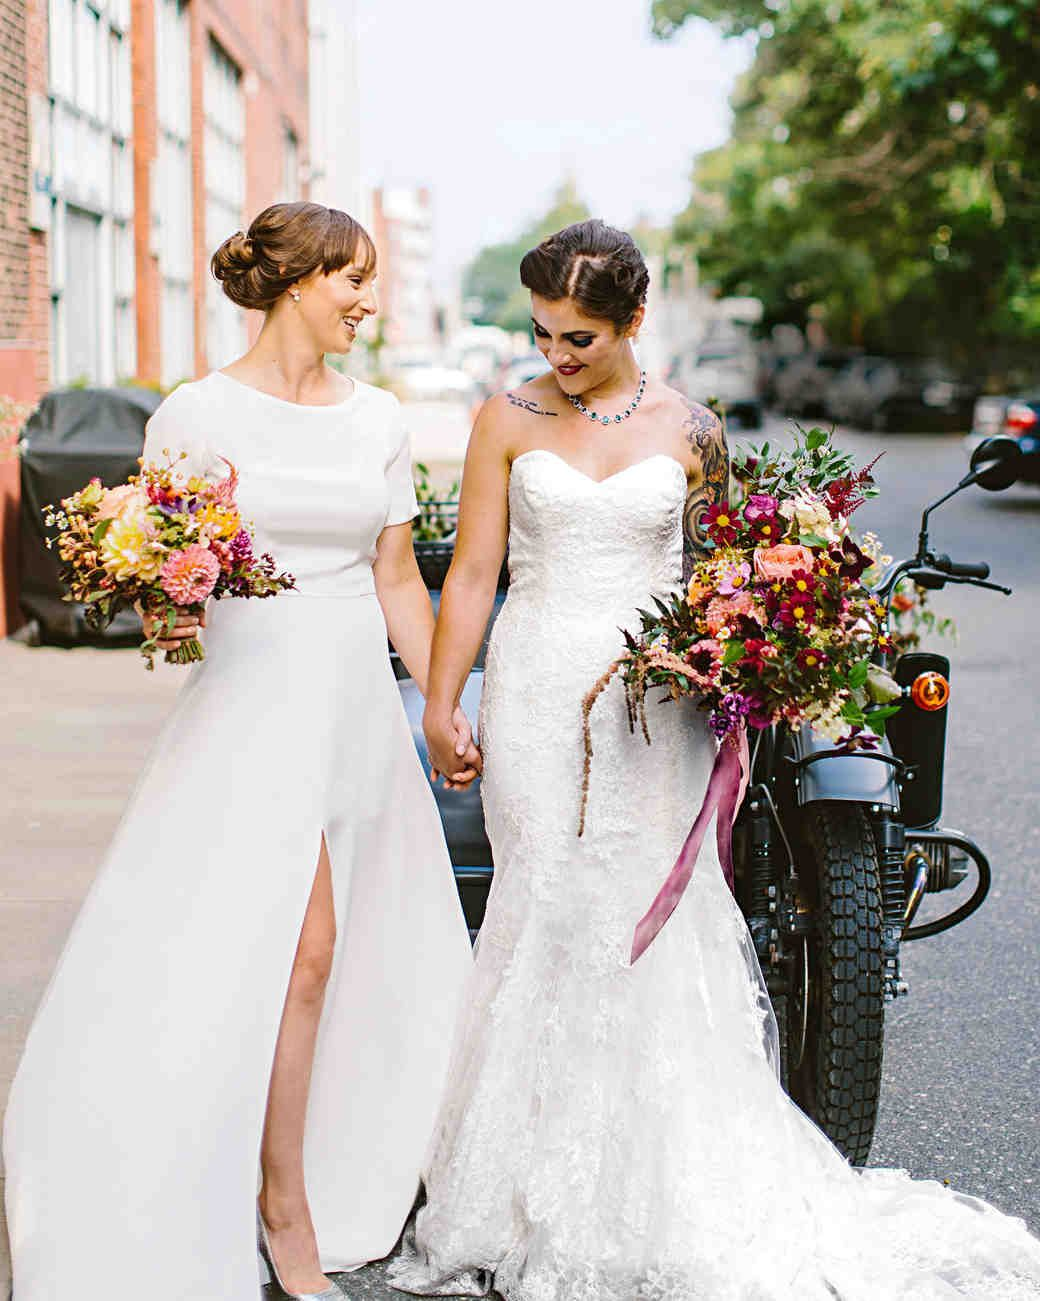 The Best Hairstyles For Every Wedding Dress Neckline Wedding Dress Necklines Lesbian Wedding Necklines For Dresses